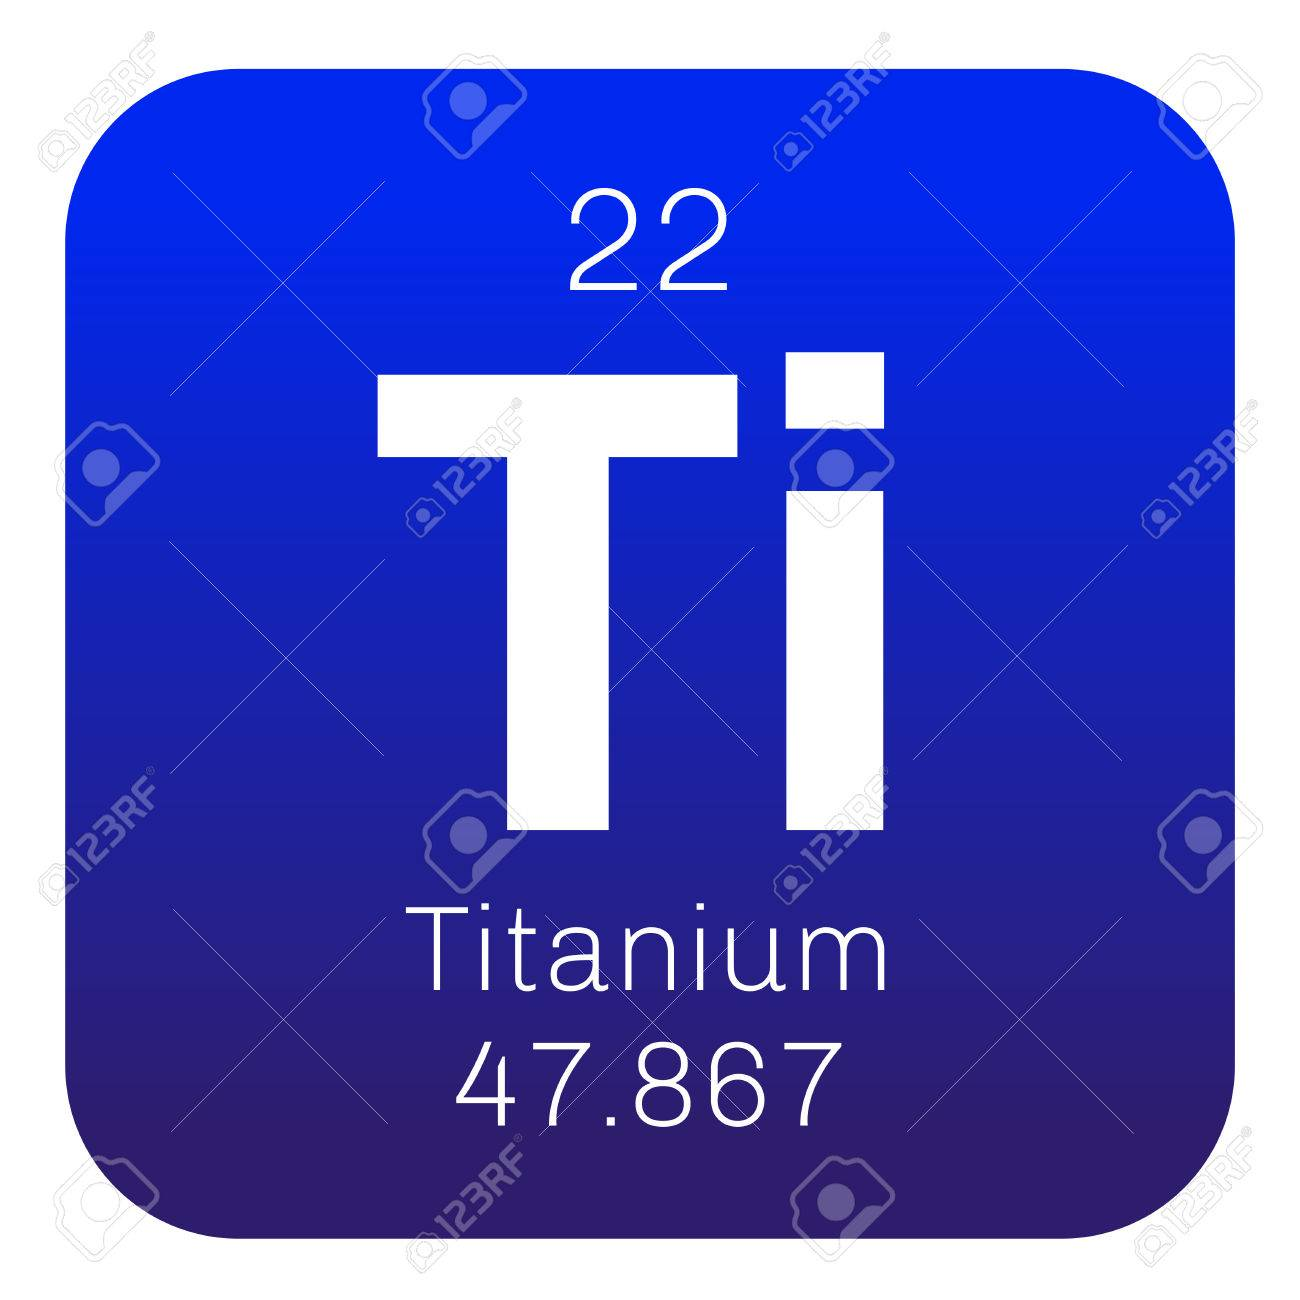 Titanium chemical element transition metal of high strength titanium chemical element transition metal of high strength colored icon with atomic number and urtaz Image collections